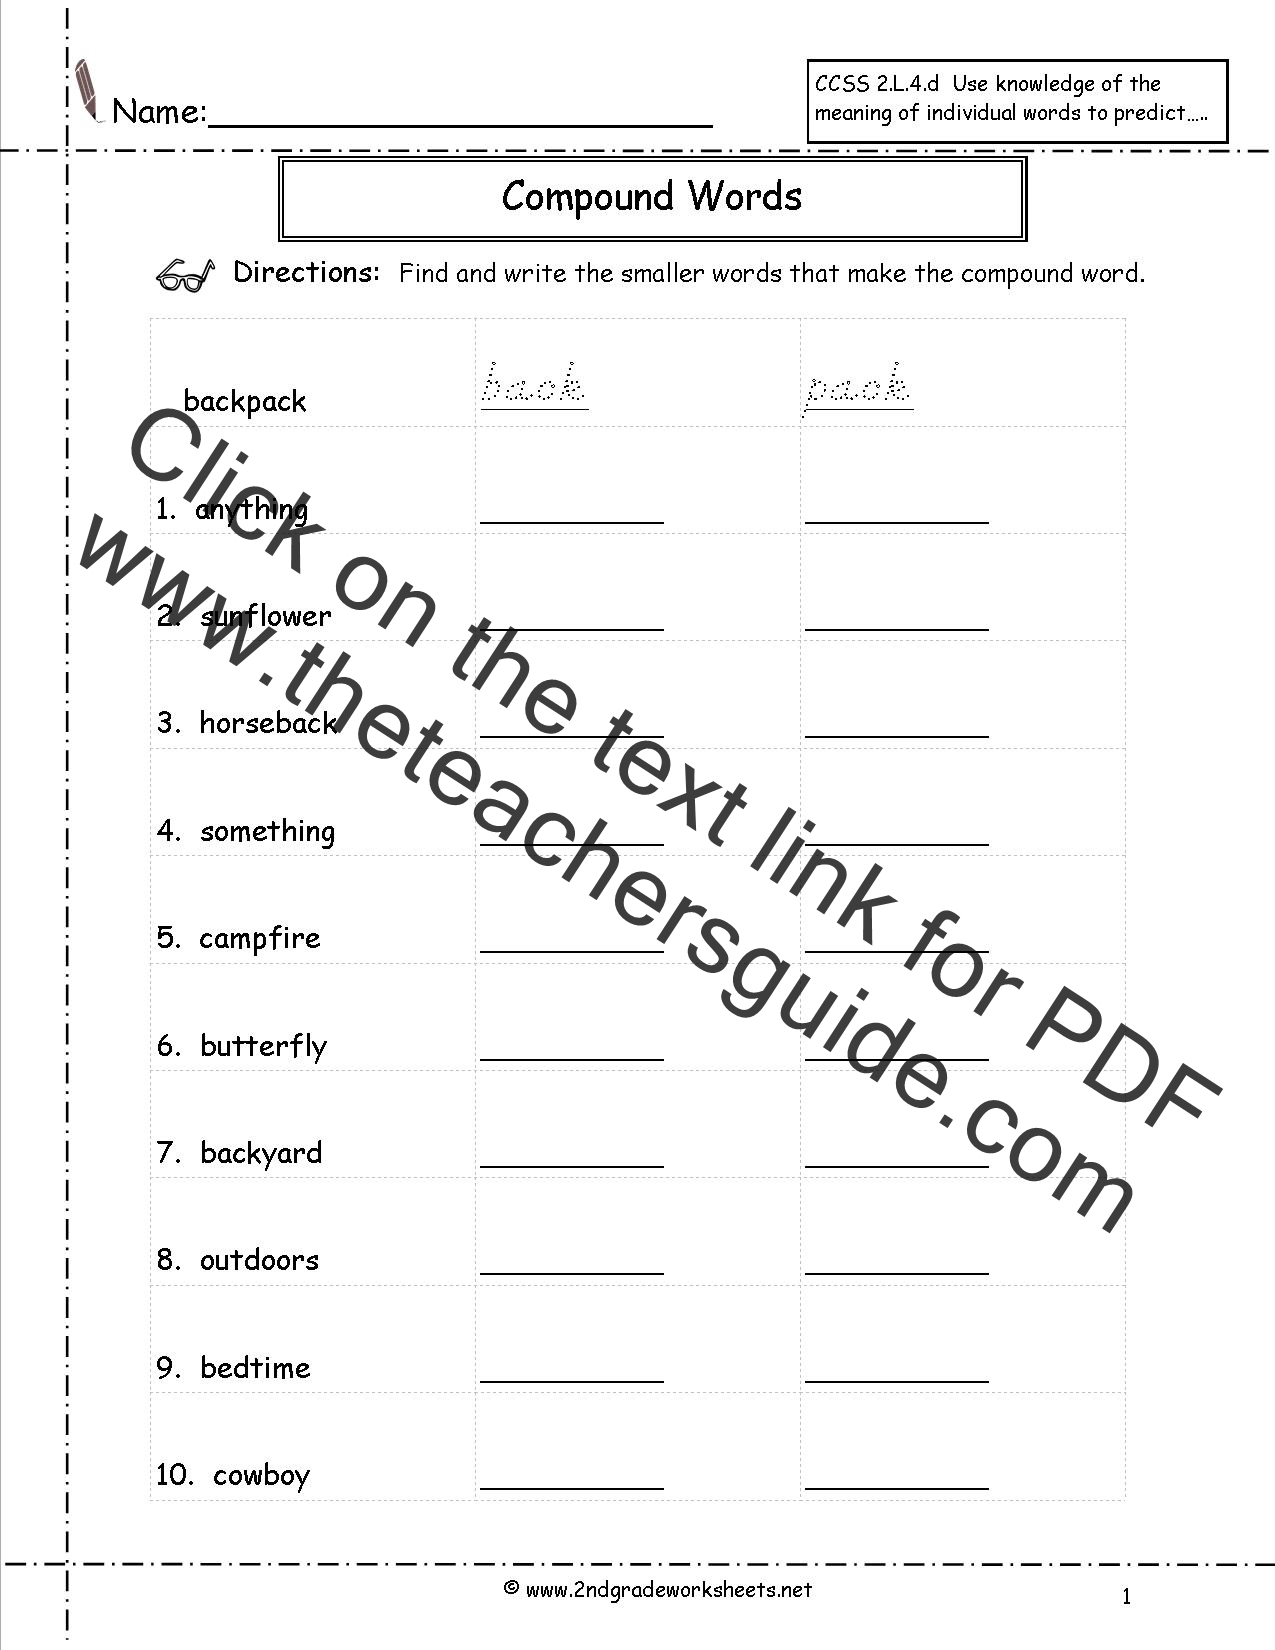 Worksheets 2nd Grade Grammar Worksheets Free free languagegrammar worksheets and printouts compound words worksheets